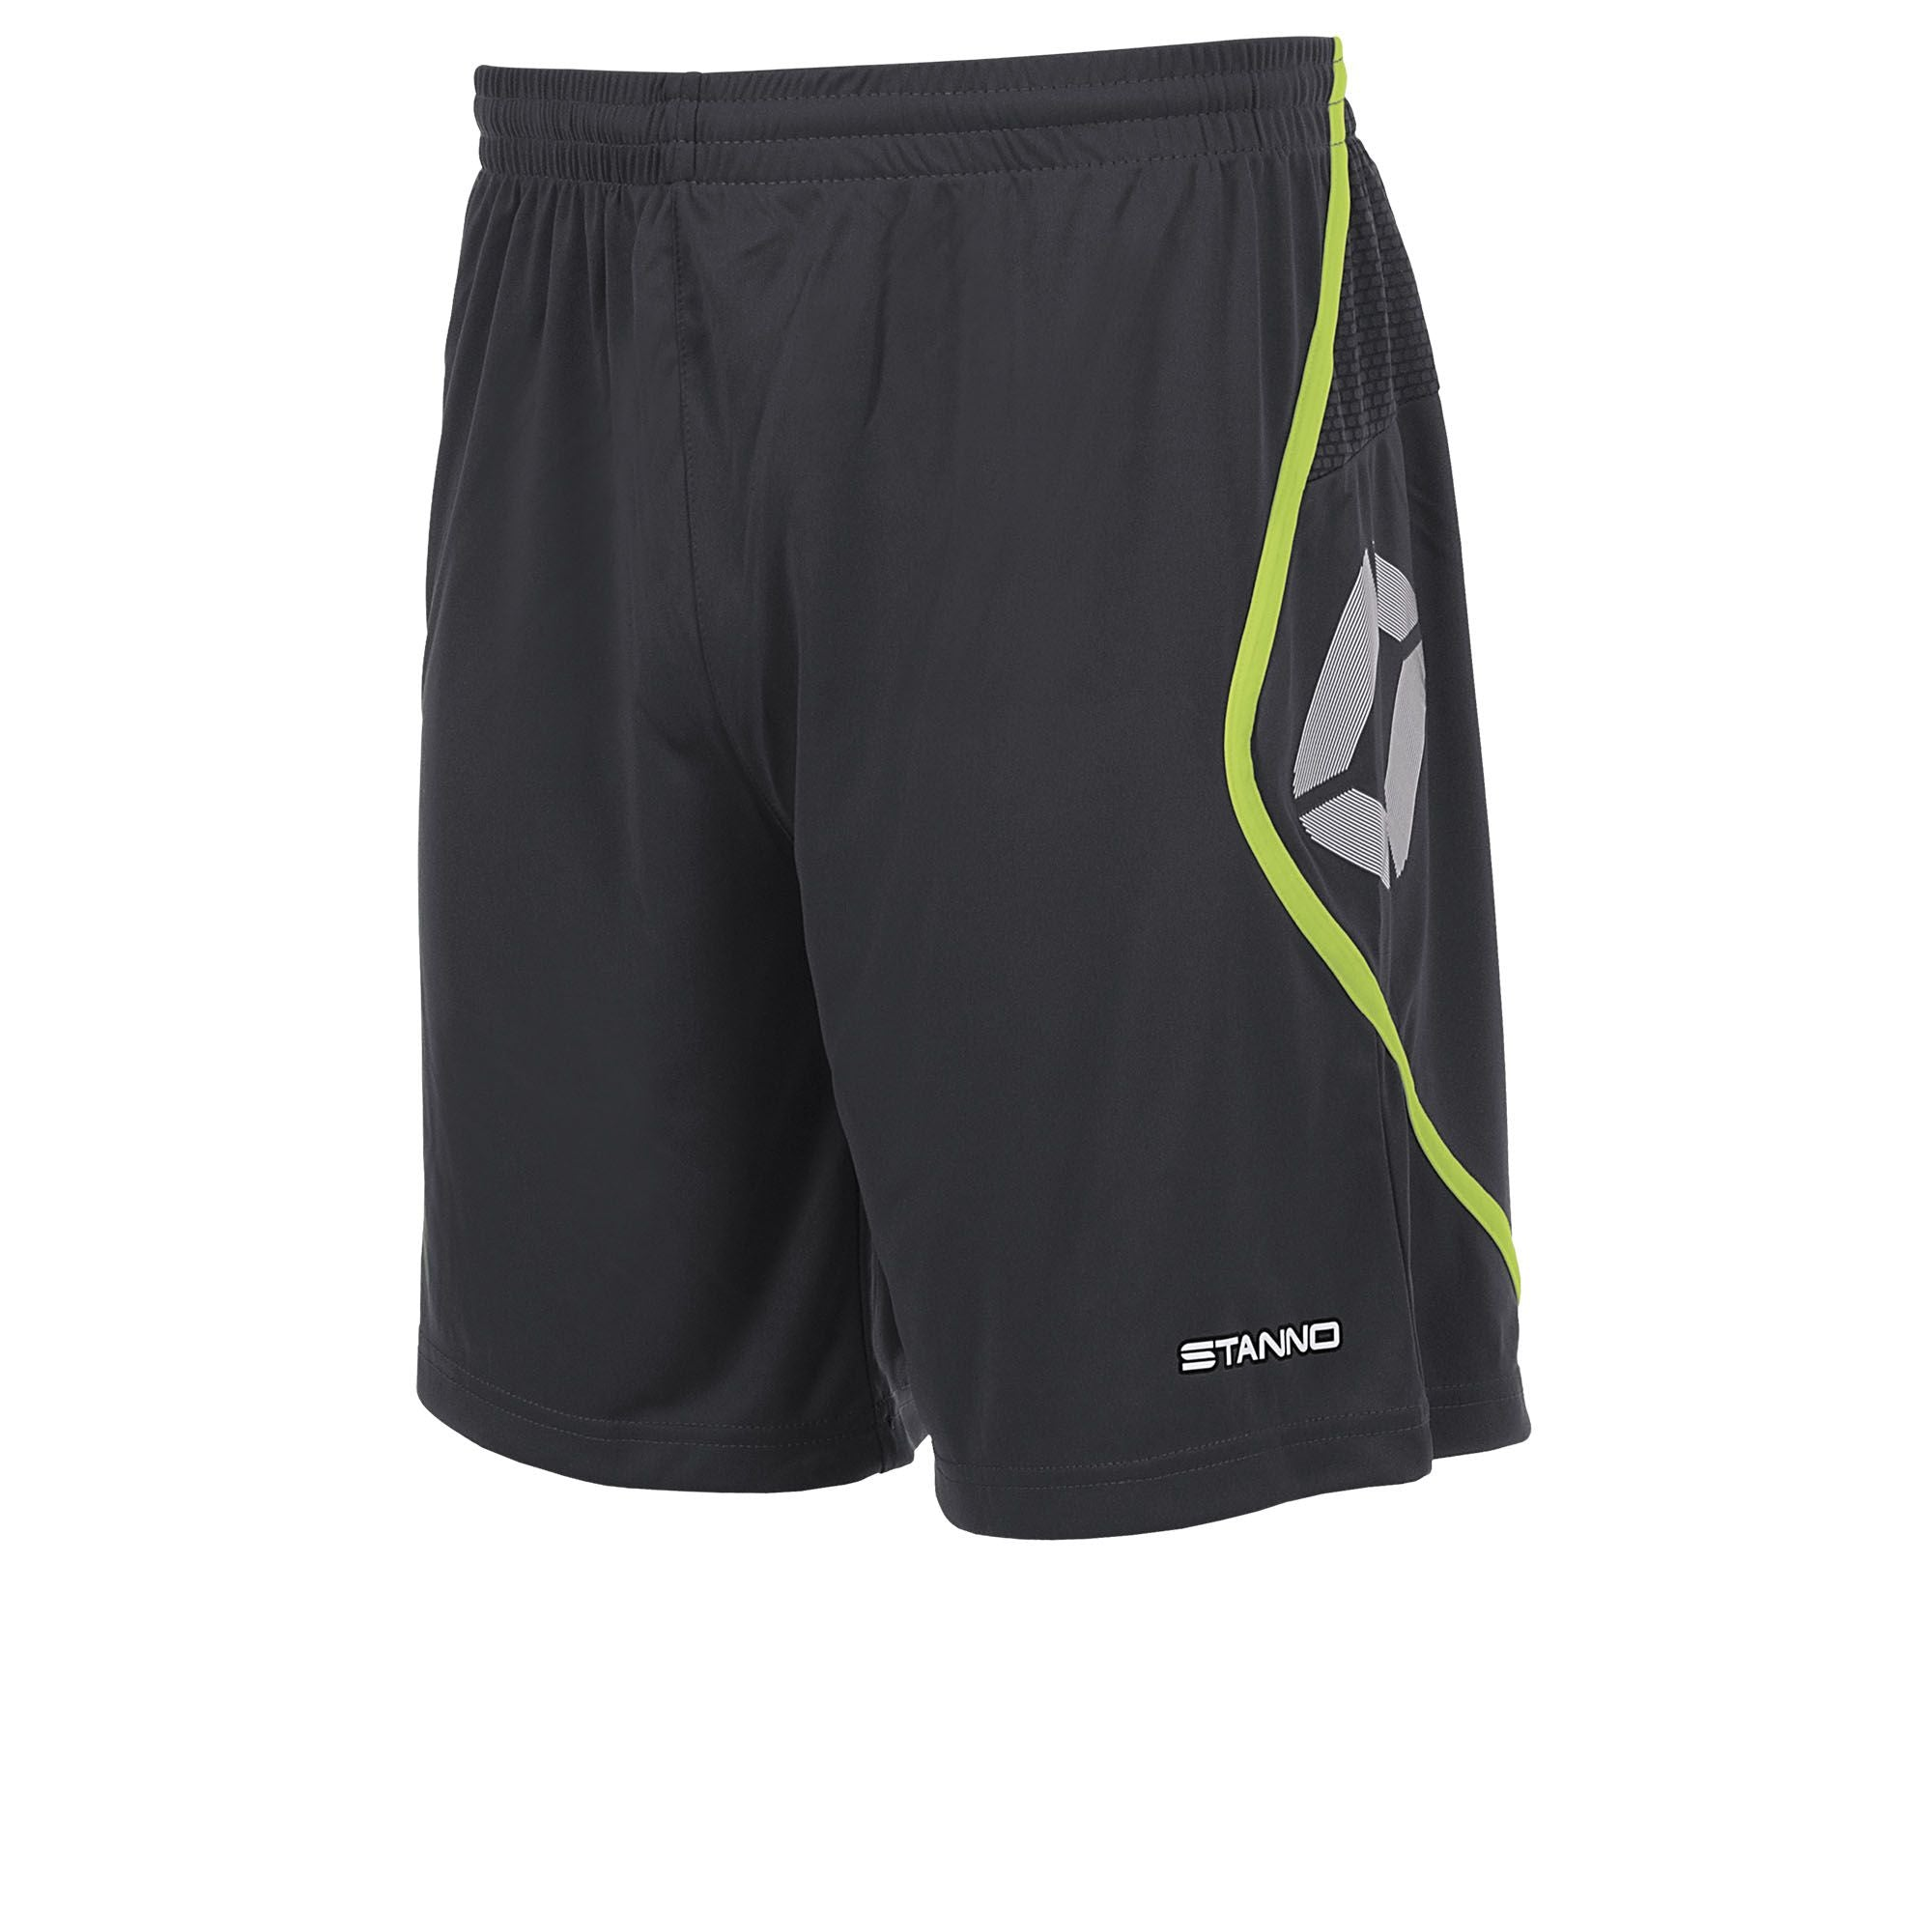 Dexters - Away - Stanno Pisa Shorts - Anthracite/Neon Yellow